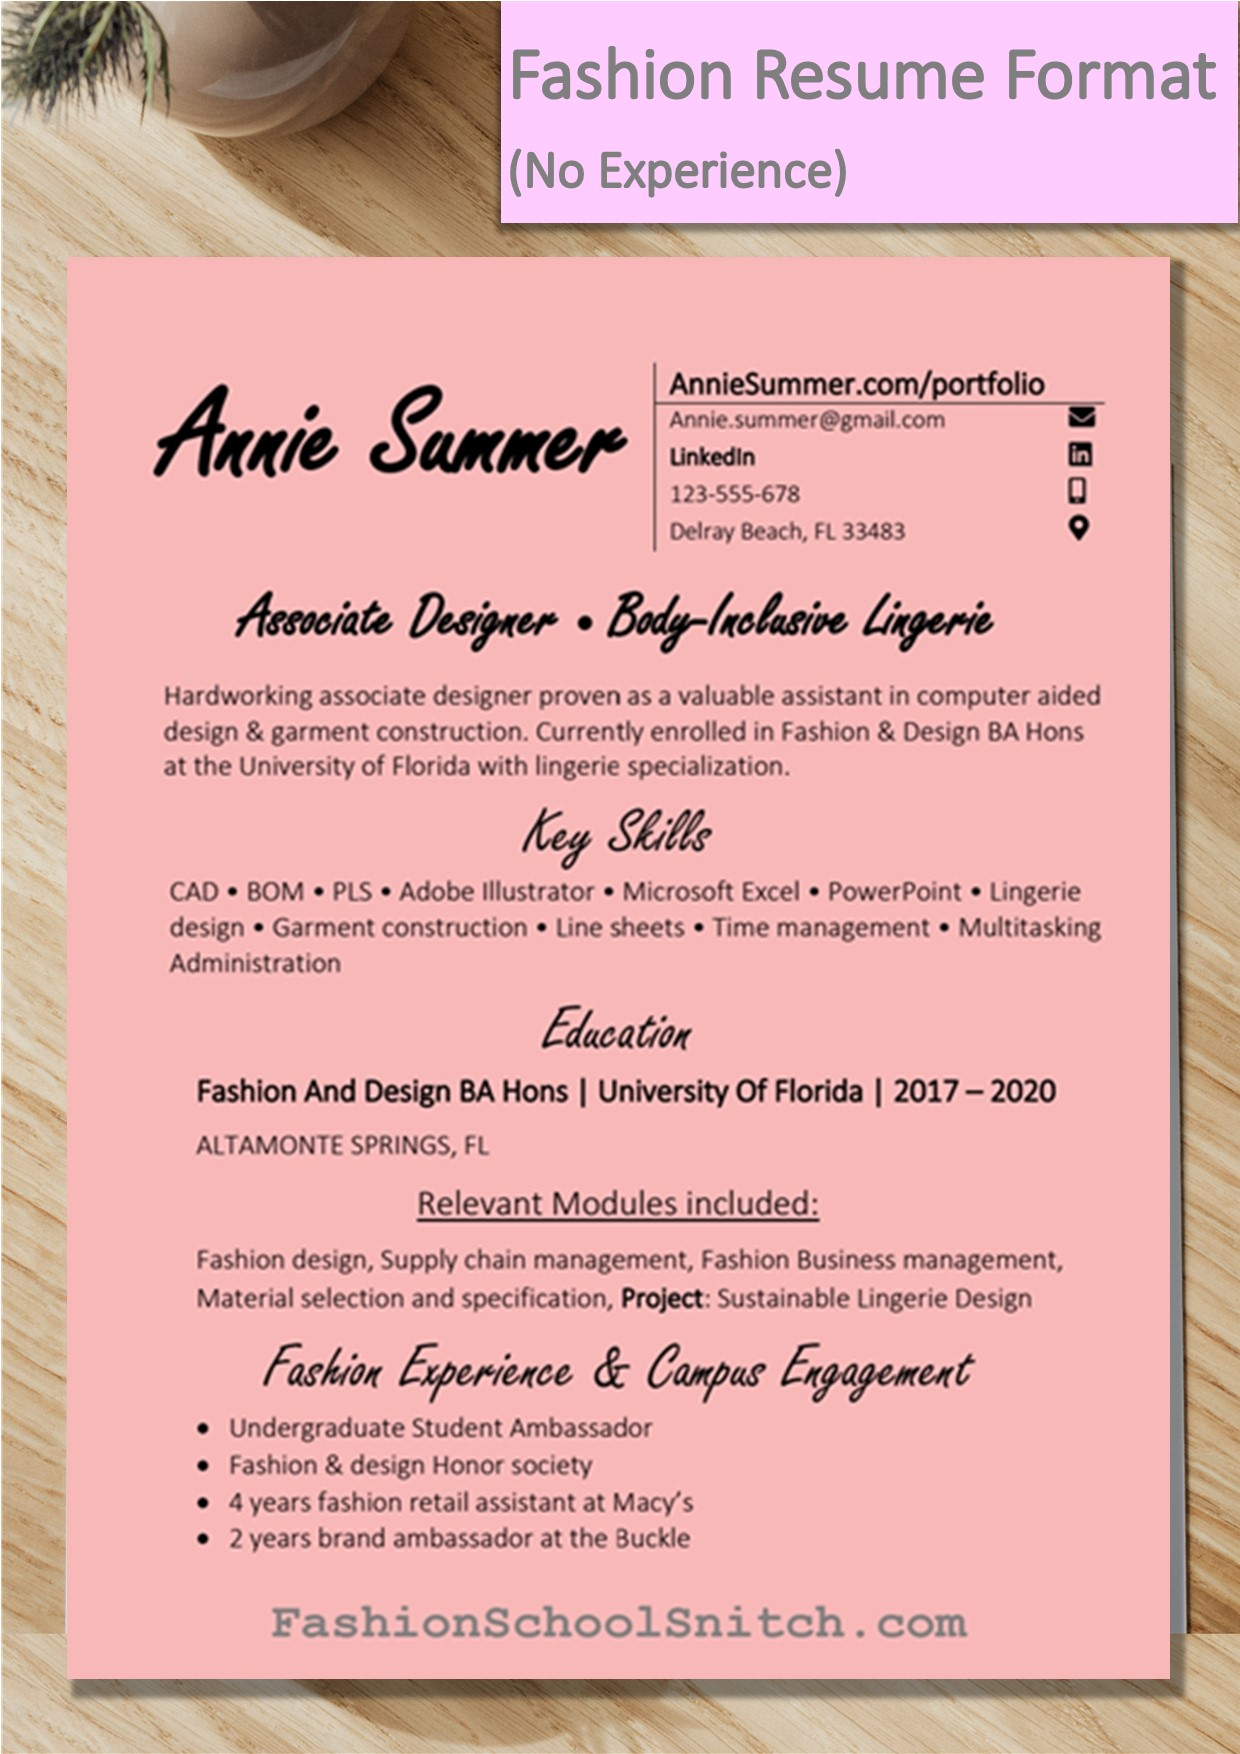 Sample: Fashion Designer resume format when you have relevant experience